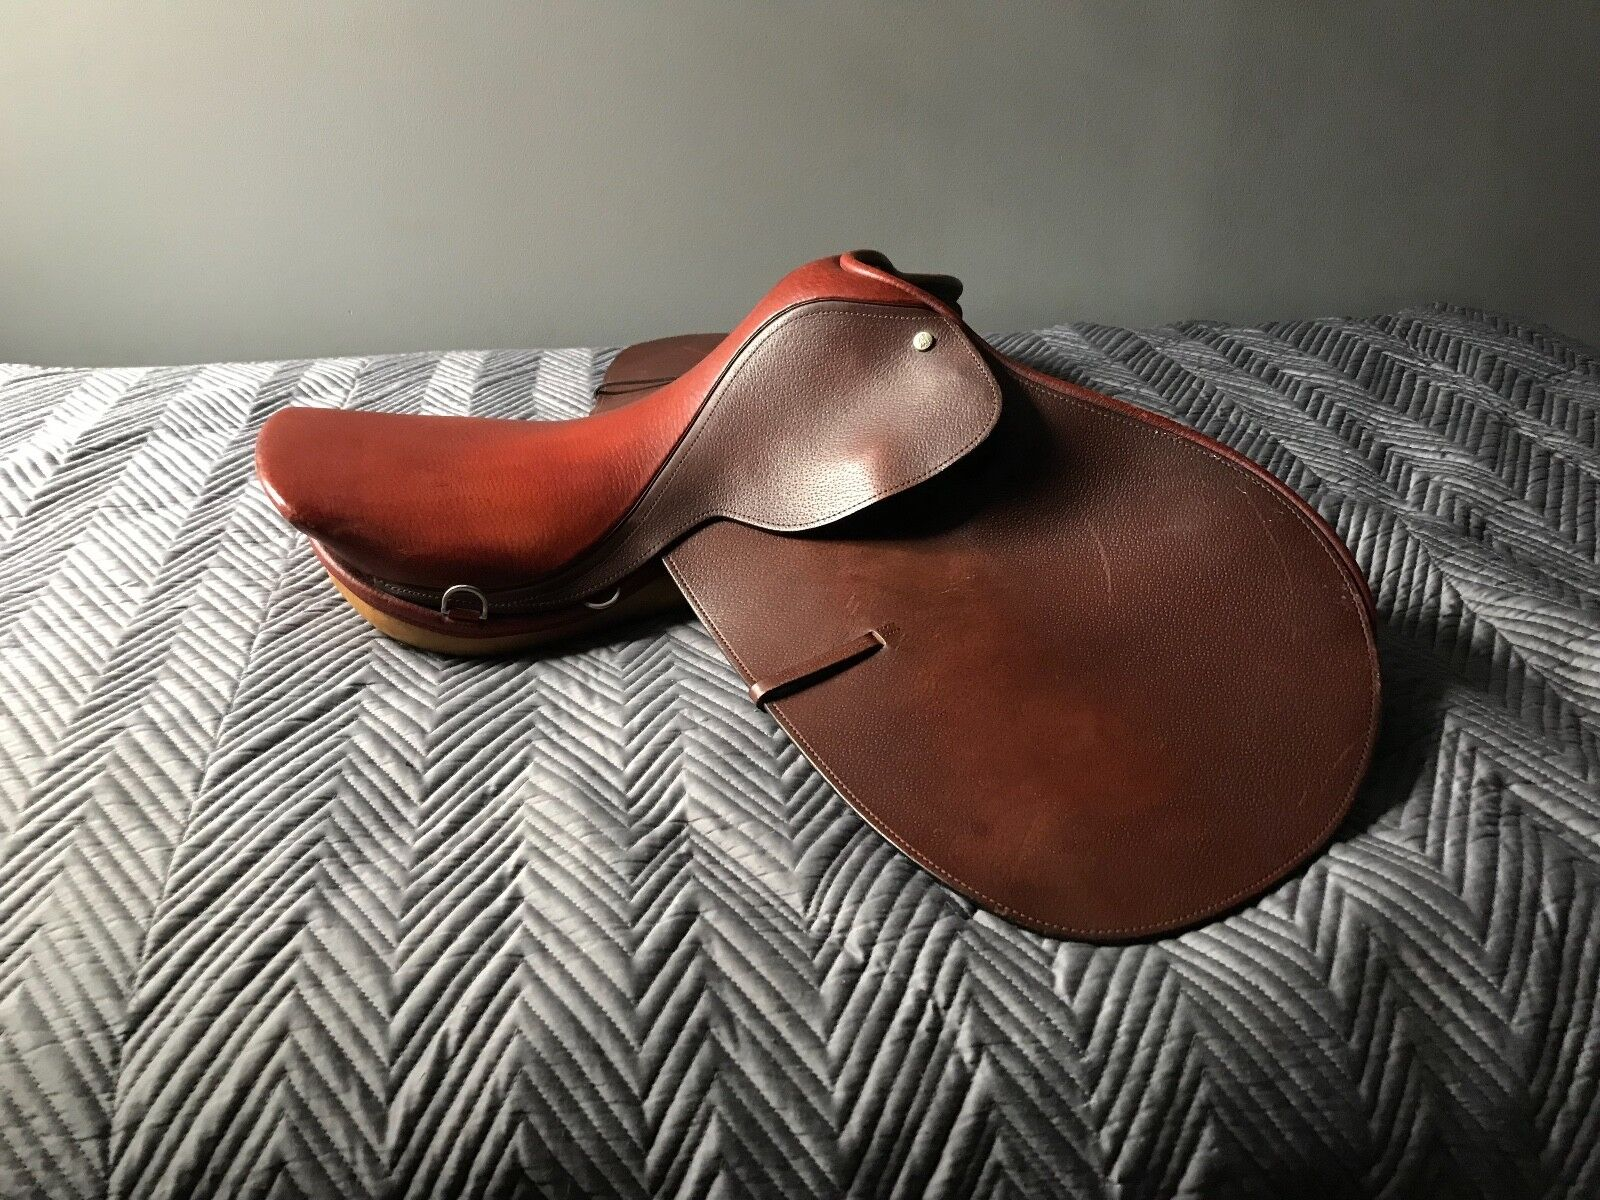 Hartley Galaxie Jumping Saddle 17 Very Good Condition